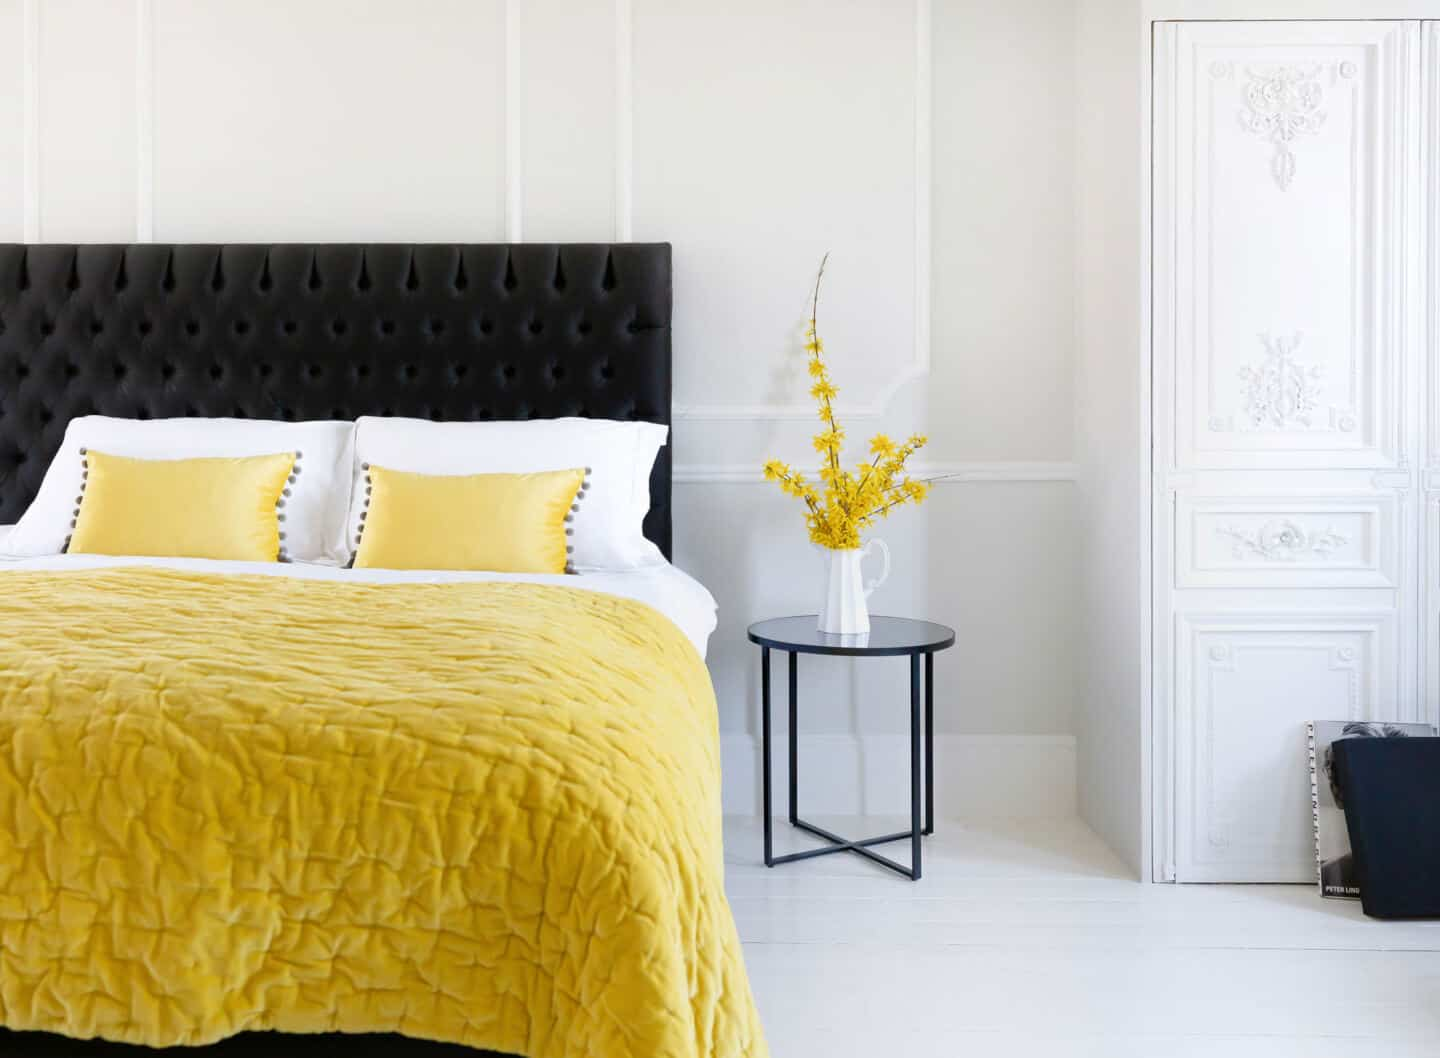 Pantone Colour of the Year 2021 - Illuminating. The colour psychology behind using yellow in interiors. A yellow bedspread and yellow cushions from The French Bedroom company on a bed in a white room